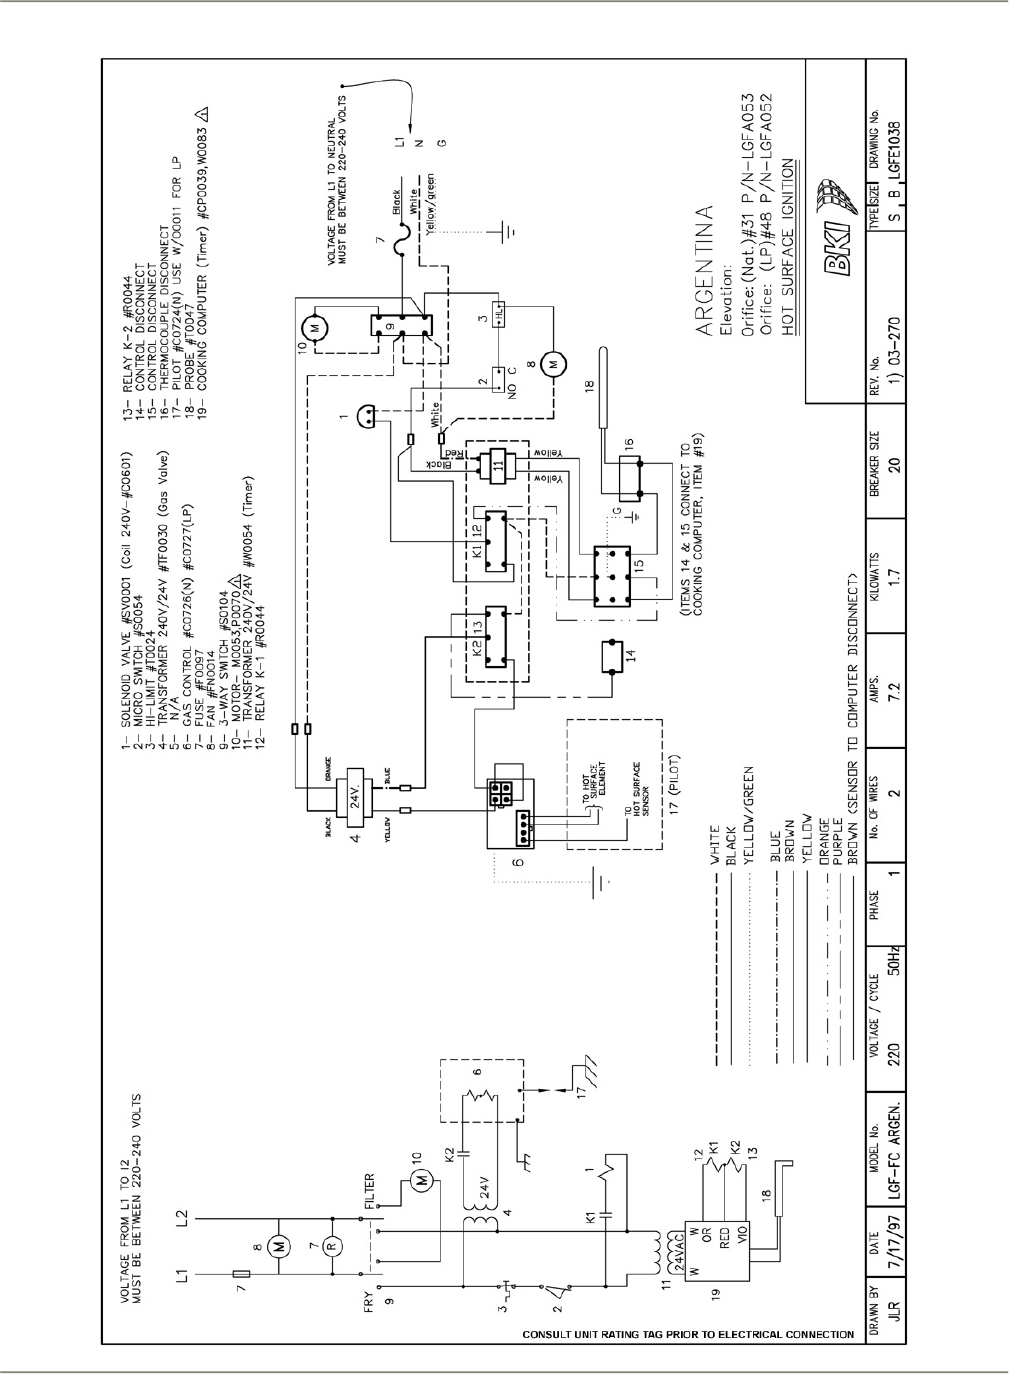 Page 57 of Bakers Pride Oven Fryer LGF User Guide ...  Way Switch Wiring Diagram Micro on 3 way switch getting hot, 3 way switch with dimmer, 3 way switch troubleshooting, two way switch diagram, 3 wire switch diagram, gfci wiring diagram, easy 3 way switch diagram, volume control wiring diagram, circuit breaker wiring diagram, 3 way switch help, 3 way light switch, 3 way switch installation, 3 way switch schematic, three switches one light diagram, 3 way switch cover, 3 way switch wire, 3 way switch electrical, four way switch diagram, 3 way switch lighting,